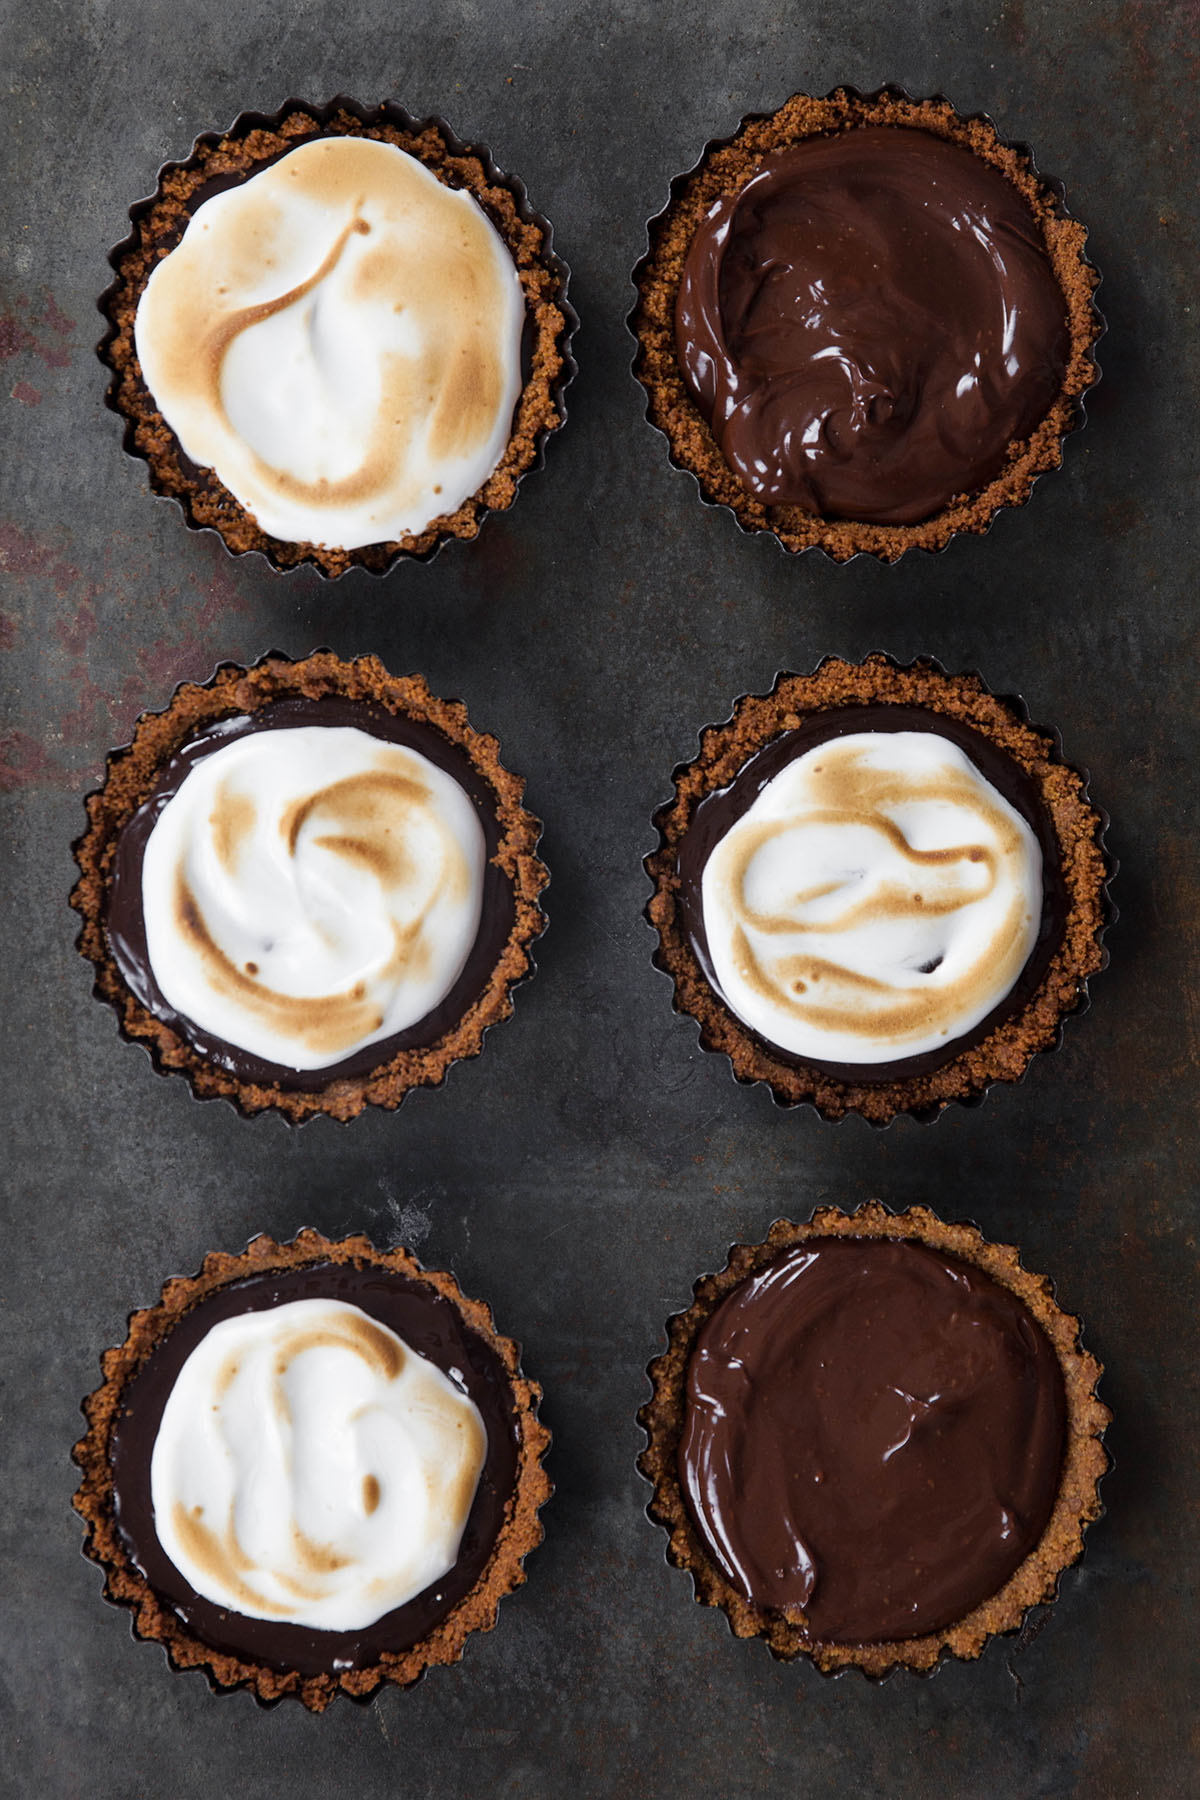 Ghost S'mores Tarts